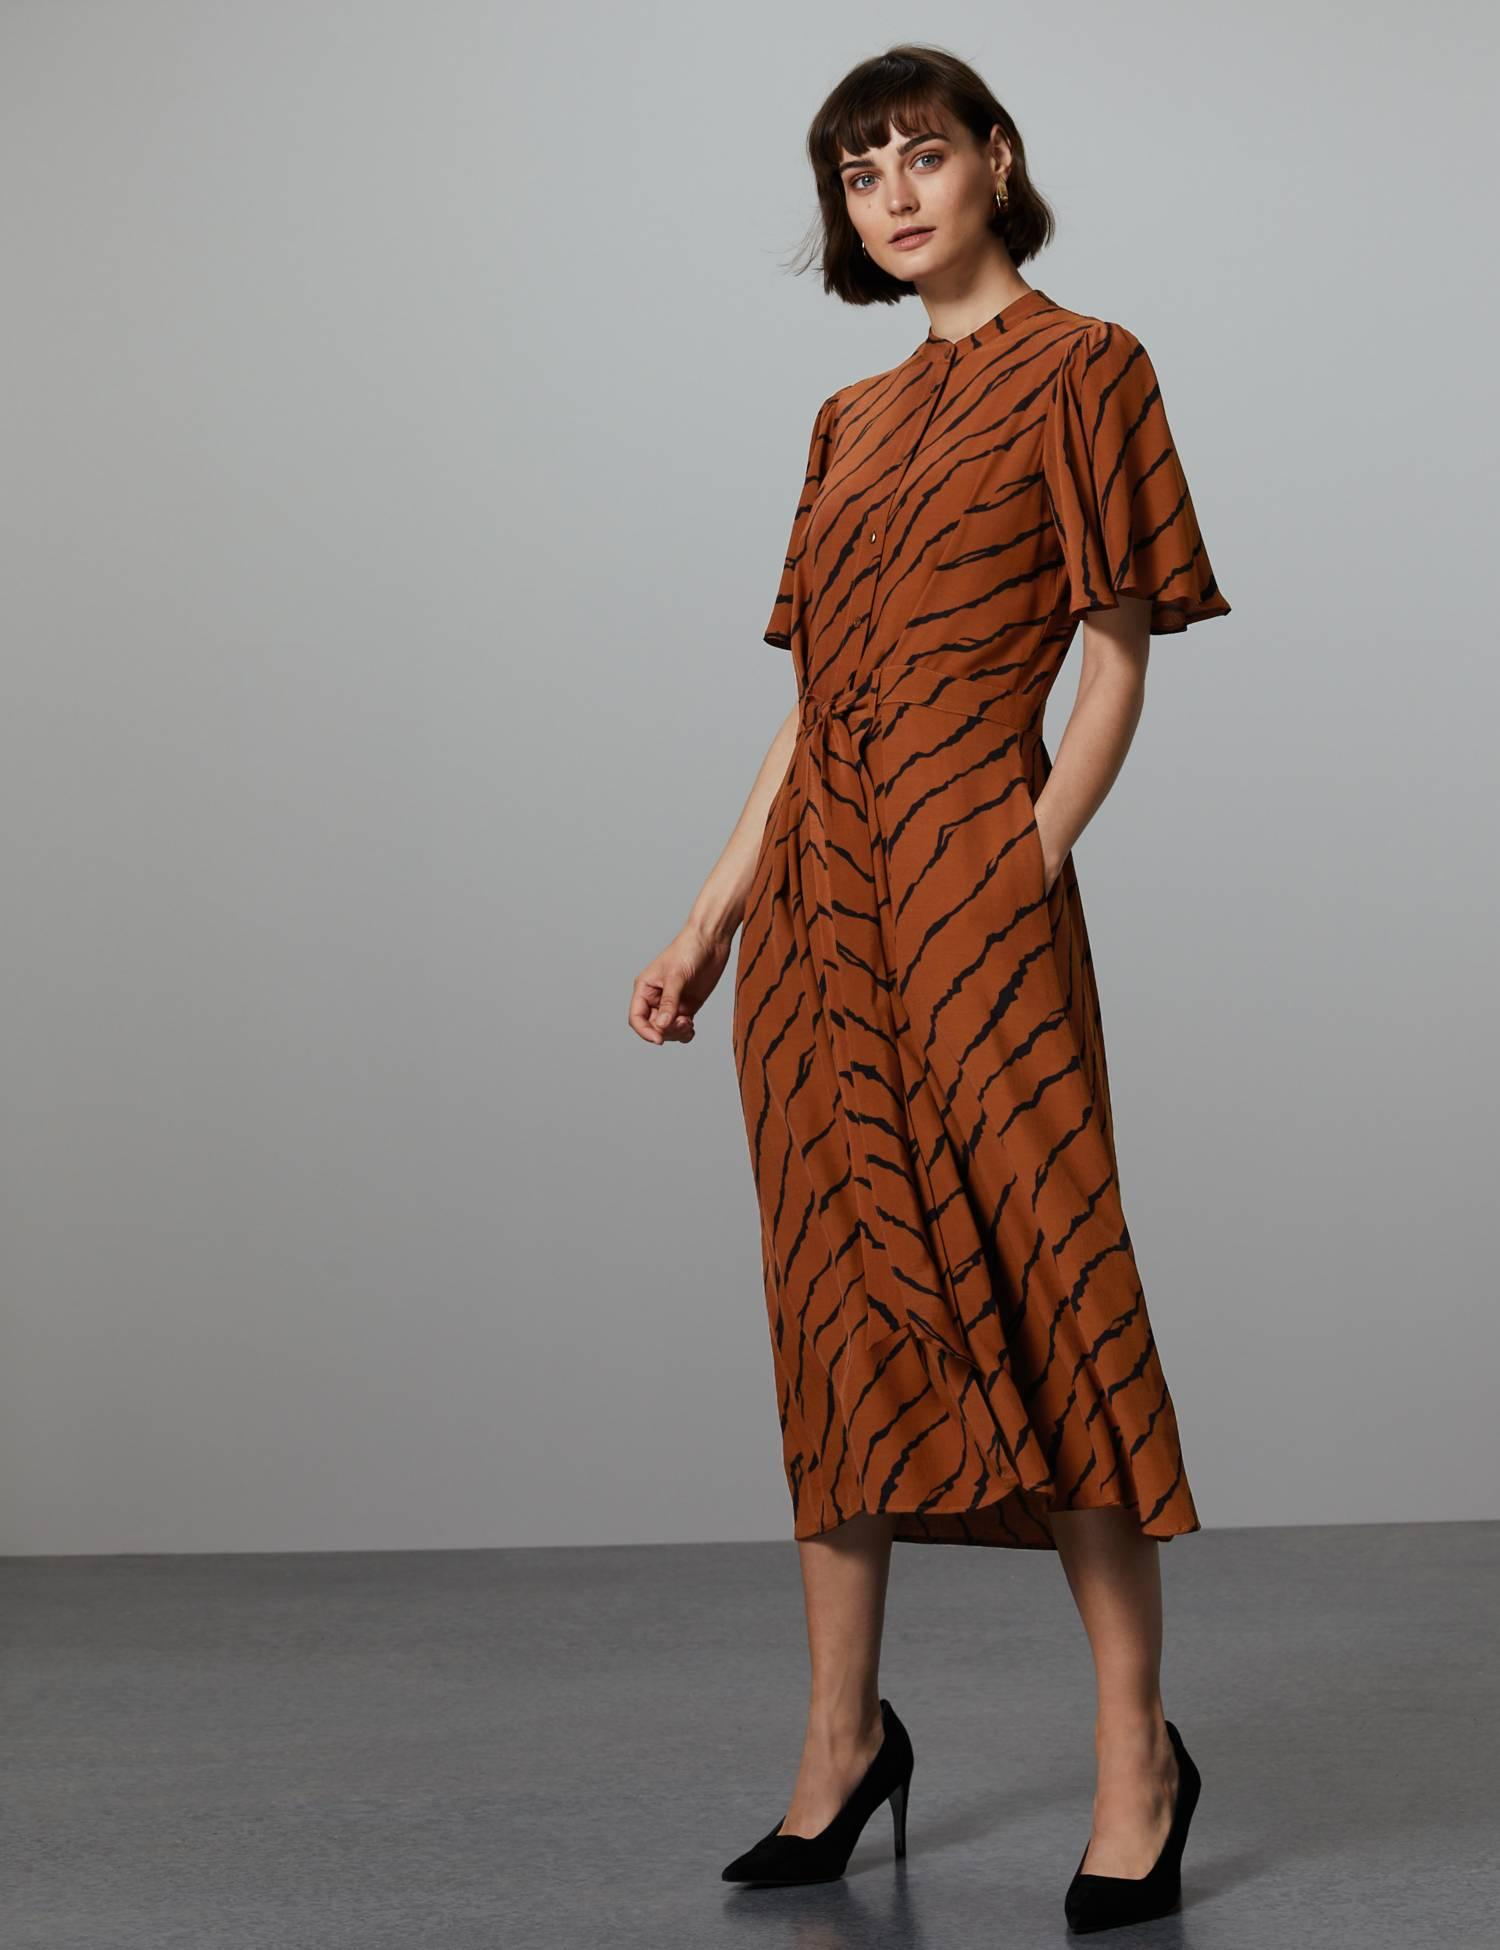 Brown animal print shirt dress - with pockets| Brown outfit inspiration |www.kittyandb.com #shirtdress #chicstyle #dress #dressinspiration